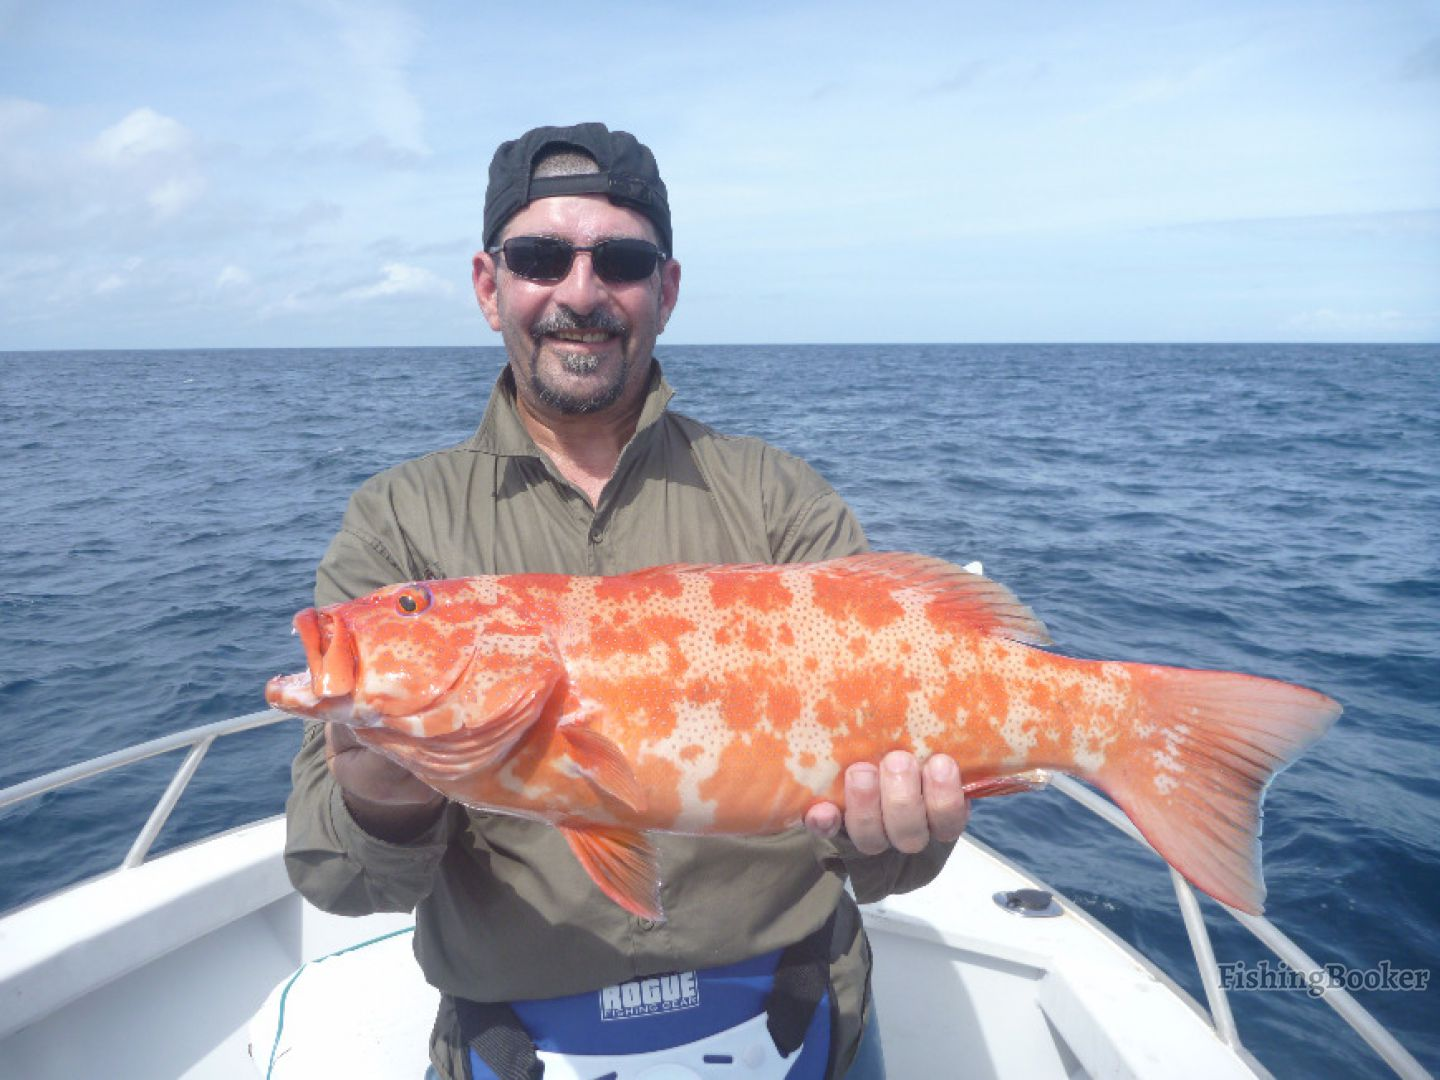 Traveling Angler's Guide to Fishing in Cairns